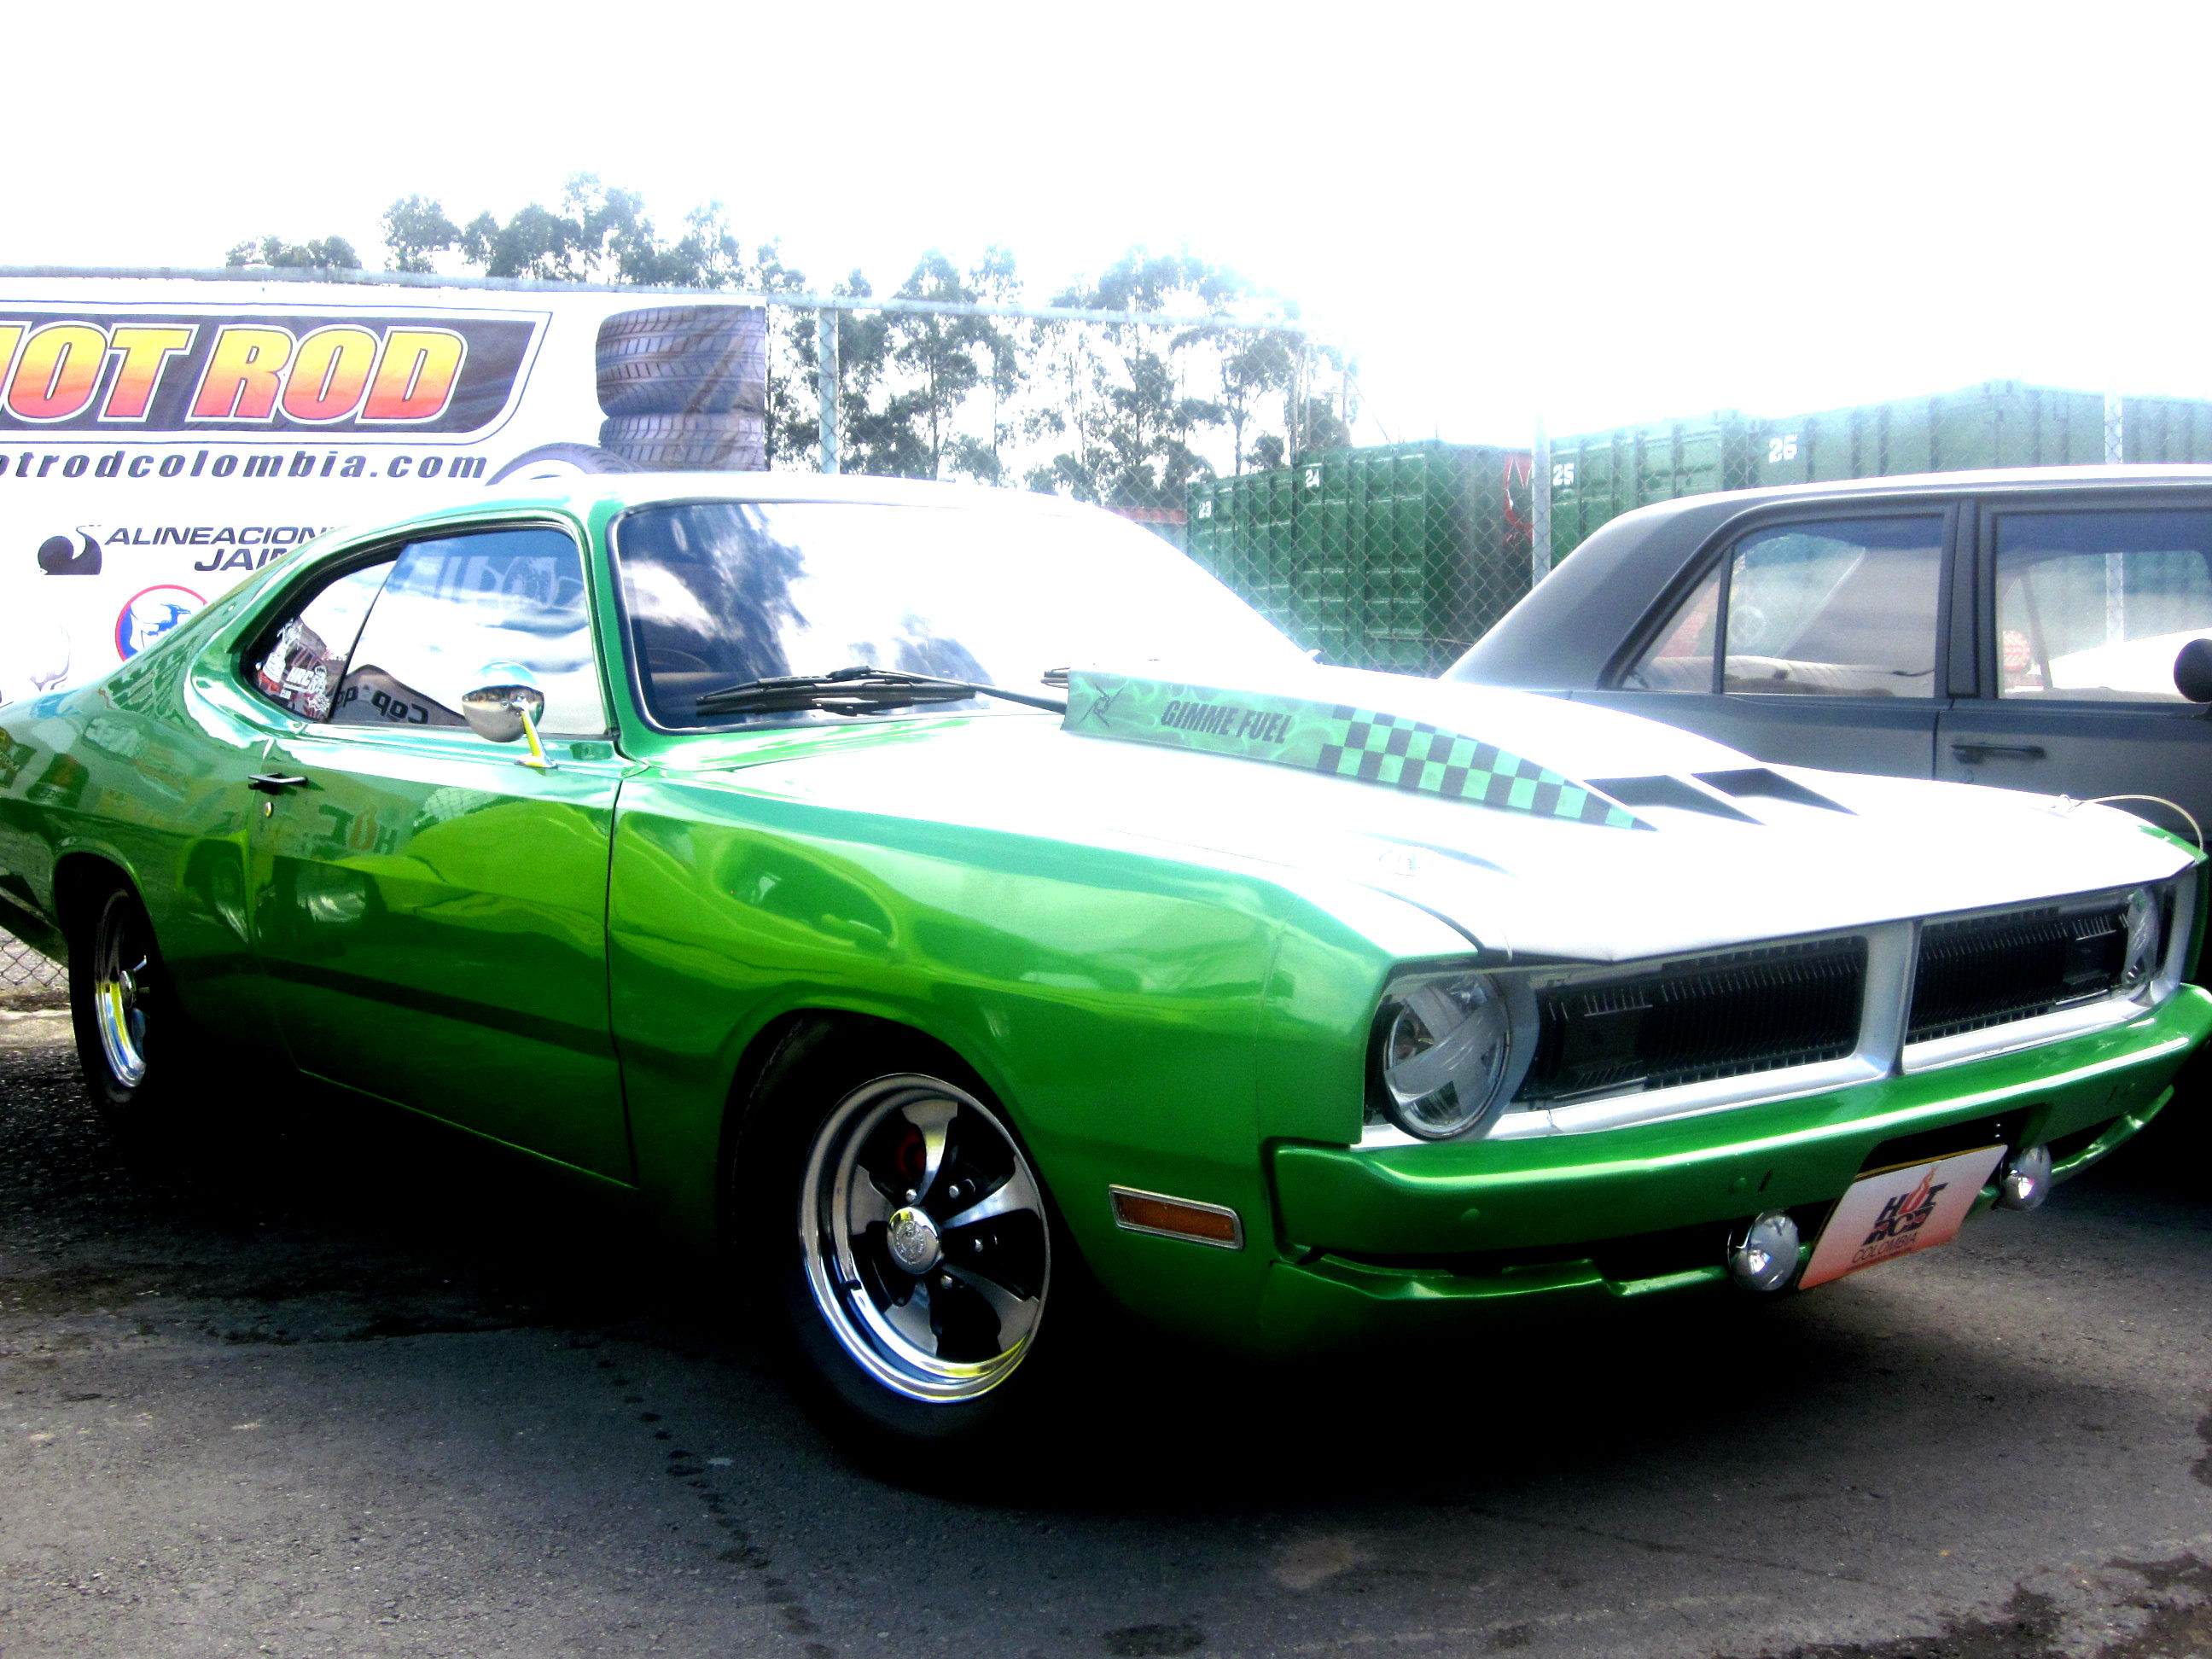 Dodge Demon muscle classic hot rod rods drag race racing g5 wallpaper 2592x1944